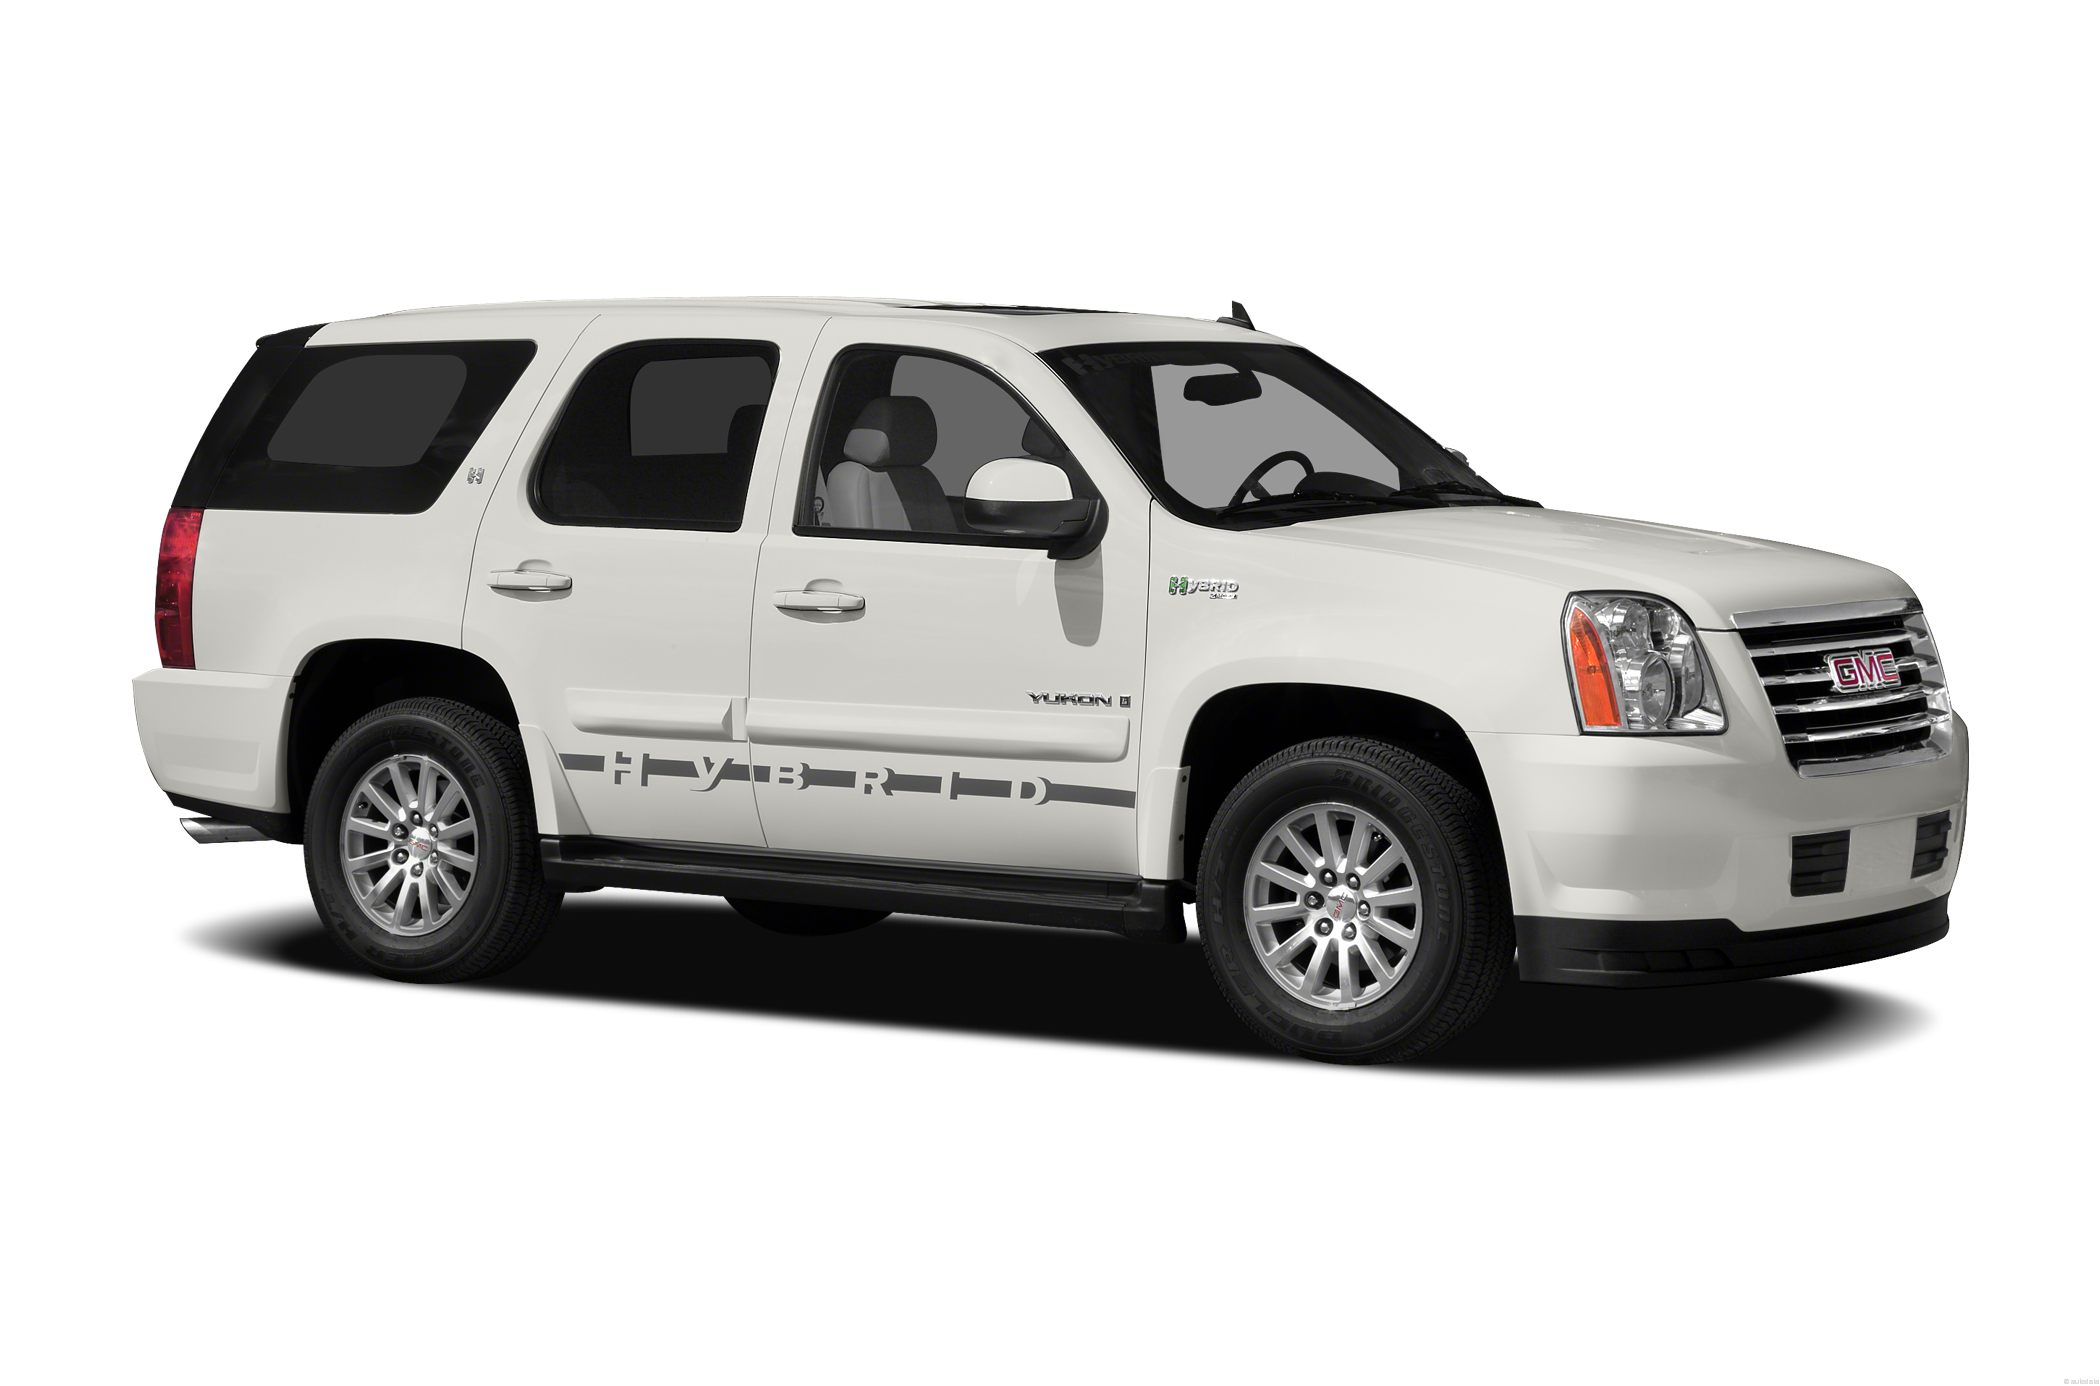 2018 GMC Yukon Hybrid photo - 5